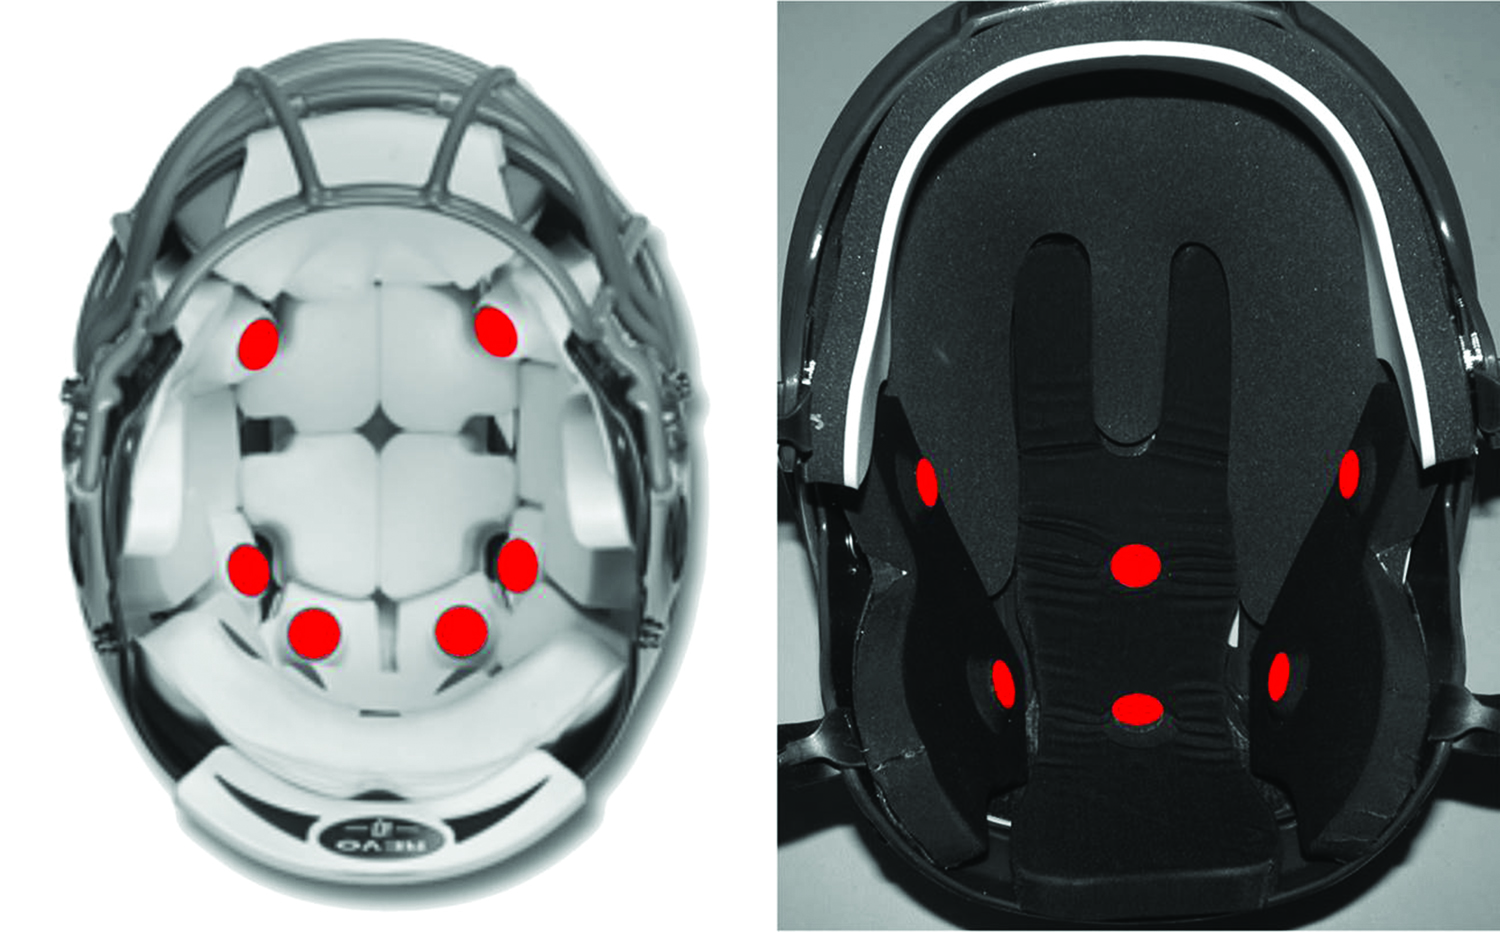 Sports helmet fitted with special sensors